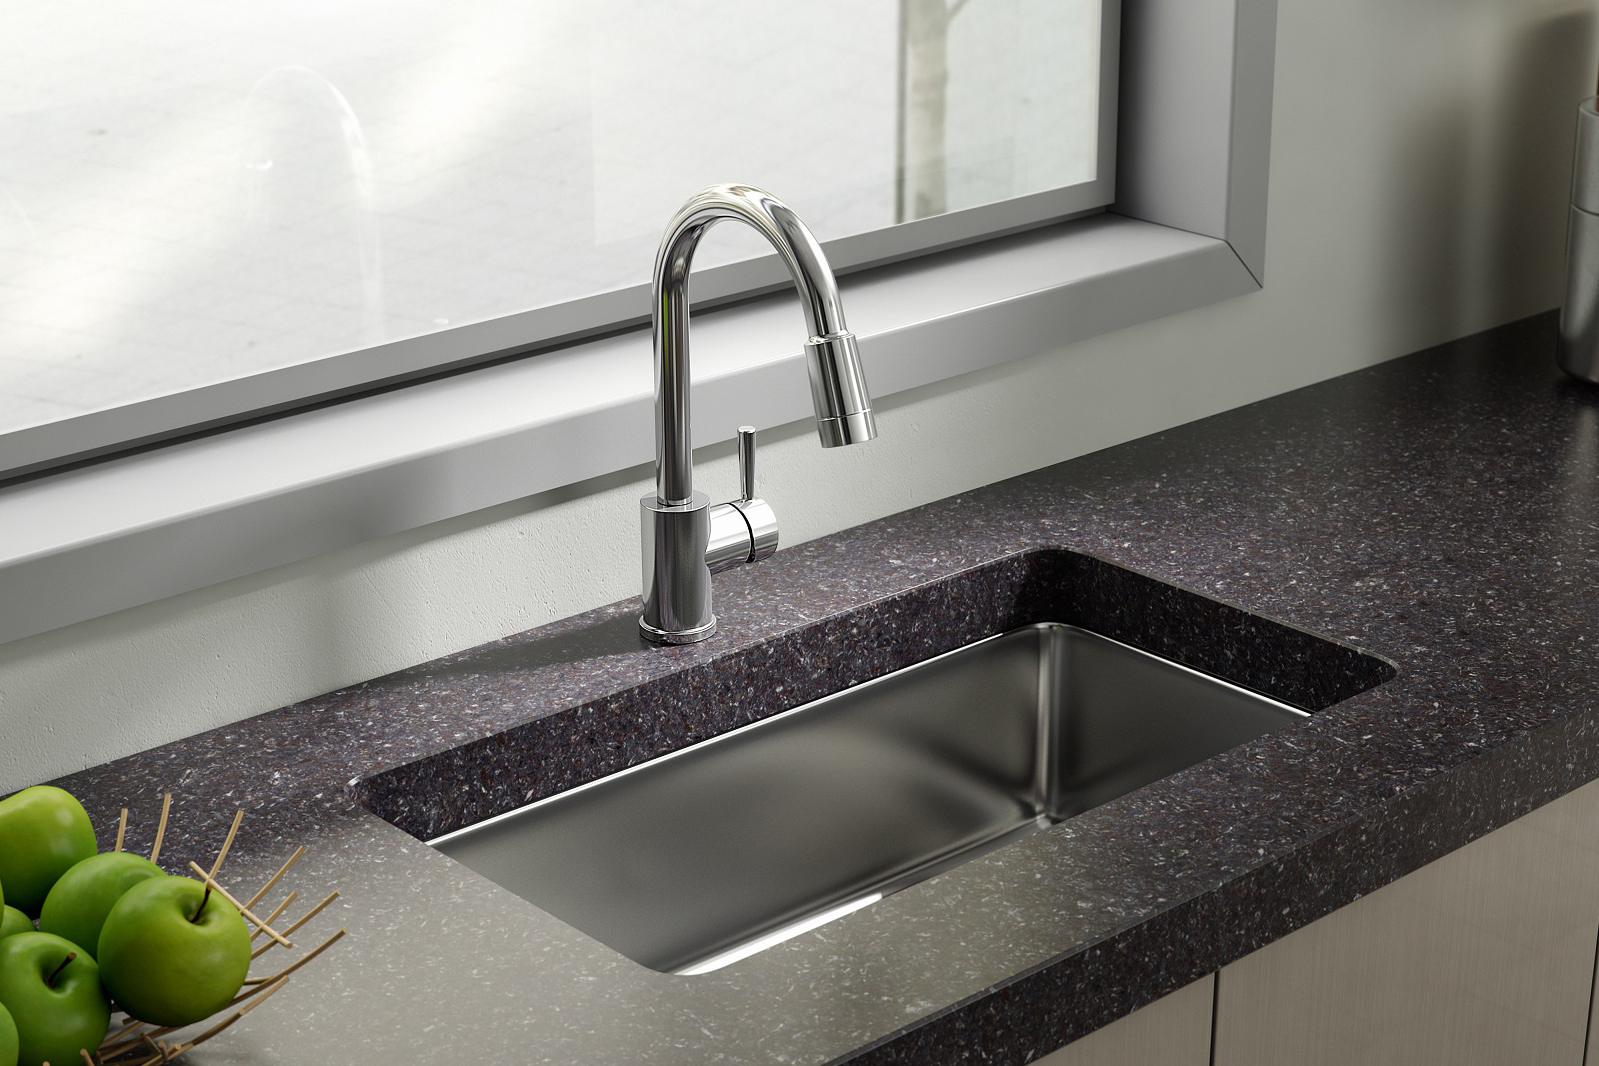 CFG Introduces Edgestone Faucet Suite for Multifamily K&B ...